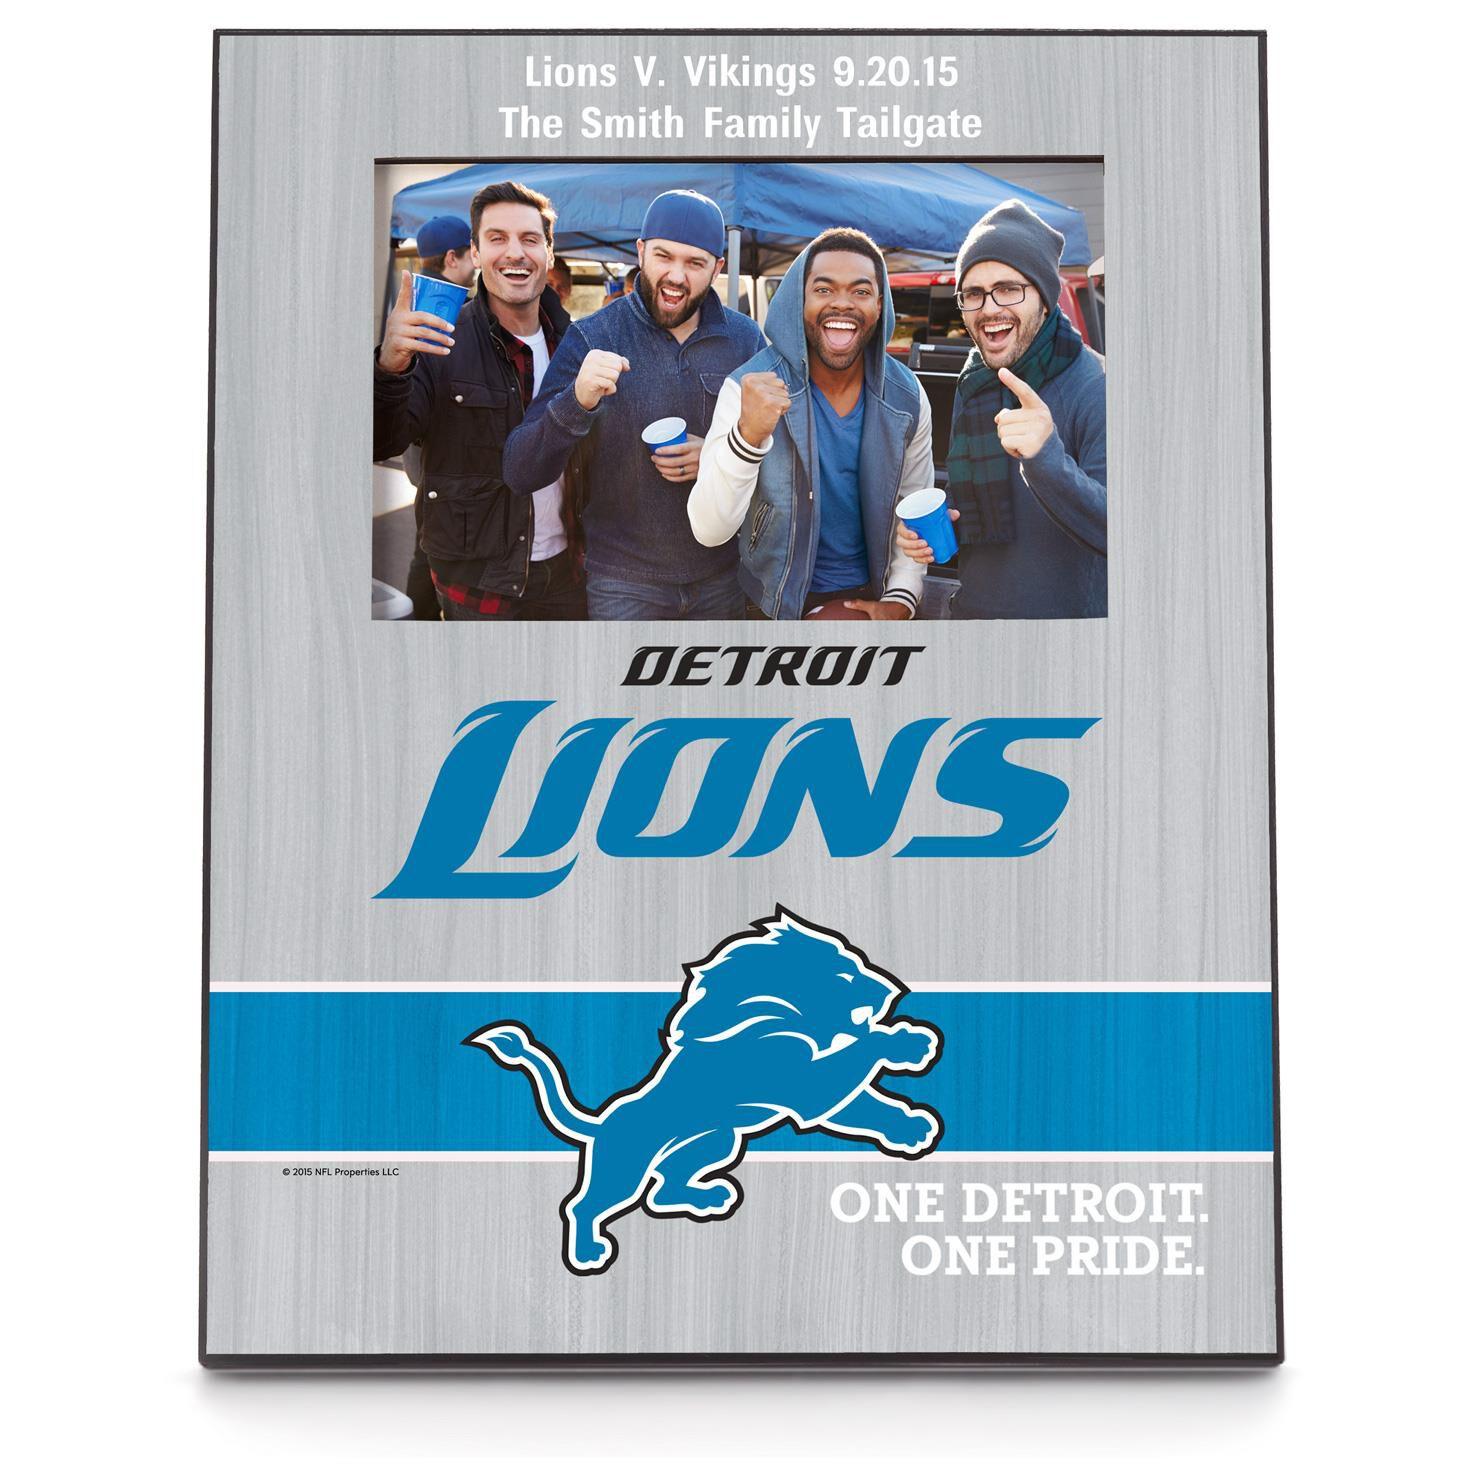 Detroit lions personalized 4x6 picture frame personalized home detroit lions personalized 4x6 picture frame personalized home decor hallmark jeuxipadfo Image collections